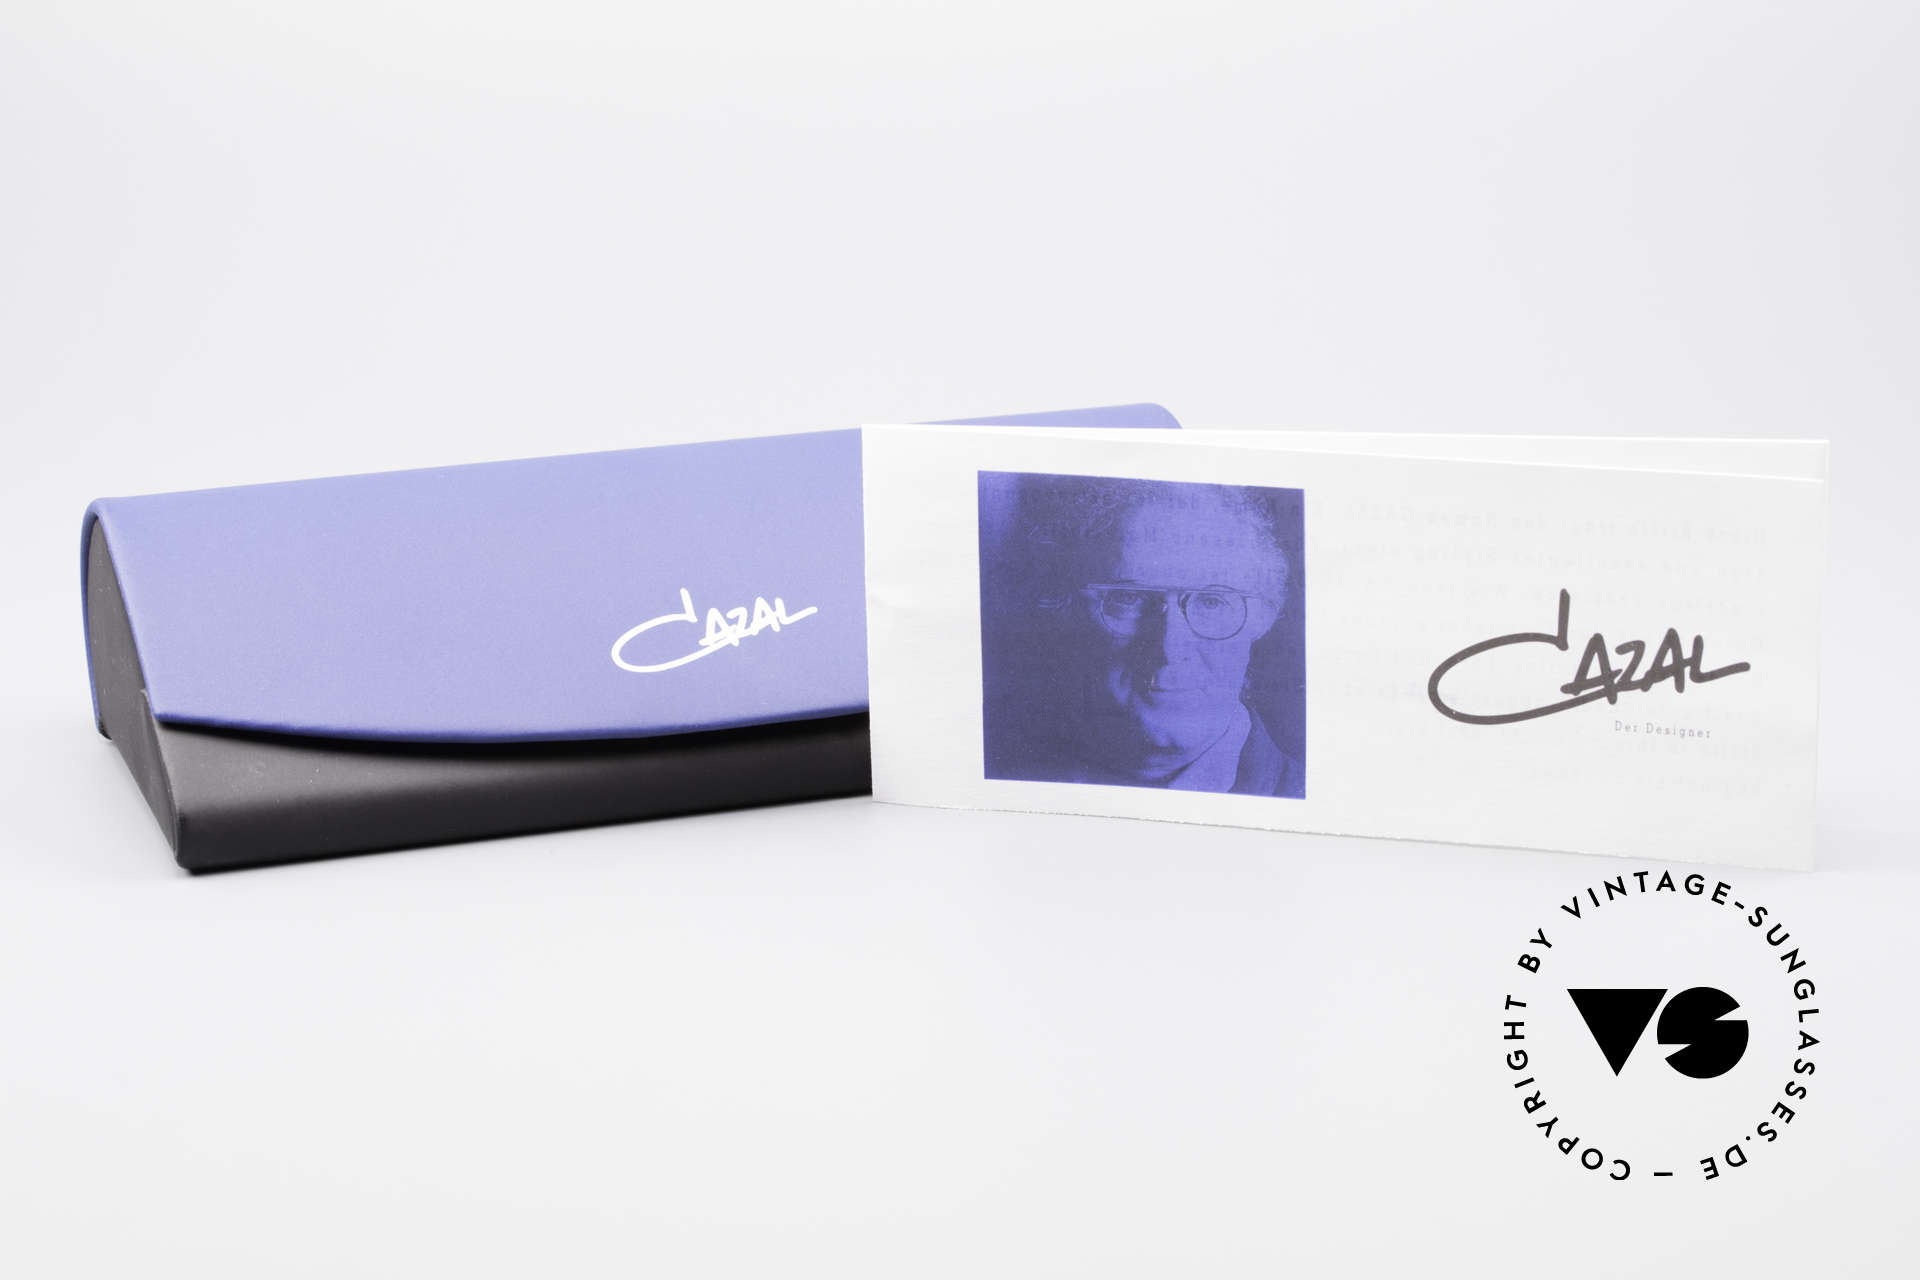 Cazal 758 Original Cazal Sunglasses 90's, NO RETRO shades, but an authentic 20 years old original, Made for Men and Women